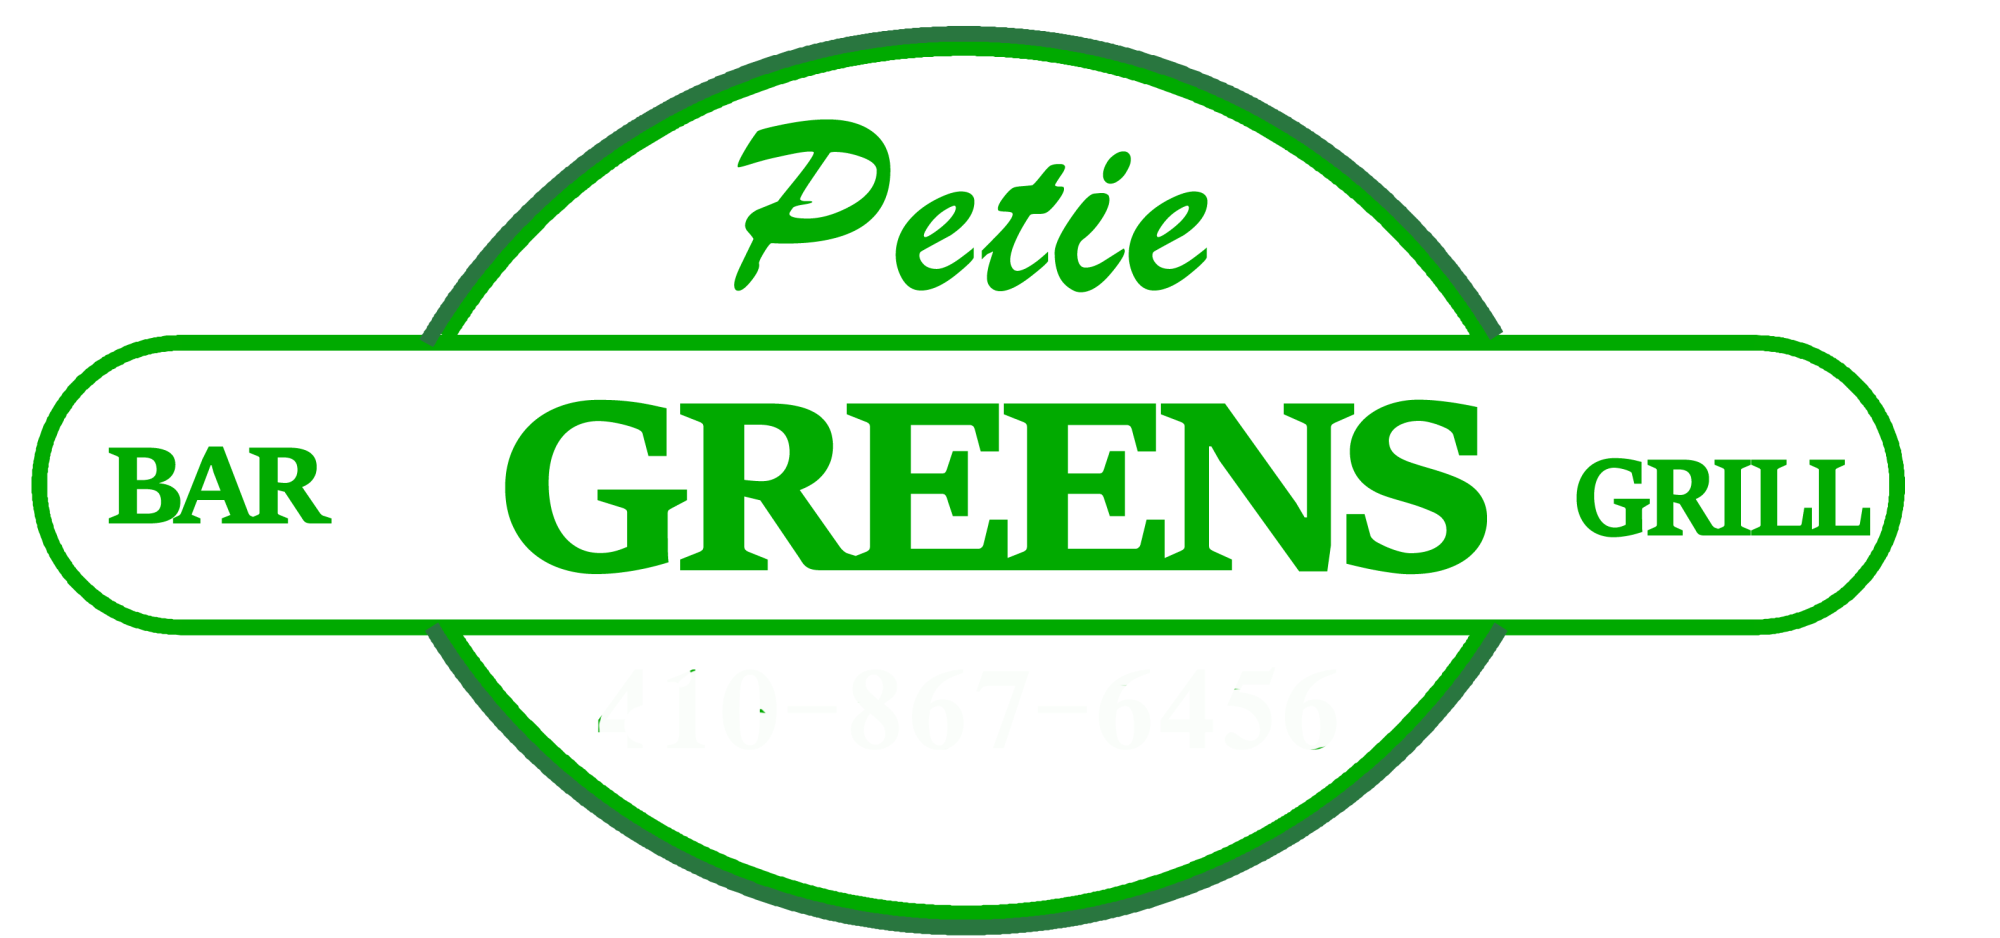 petie-greens-logo-small_no_phone_number.png